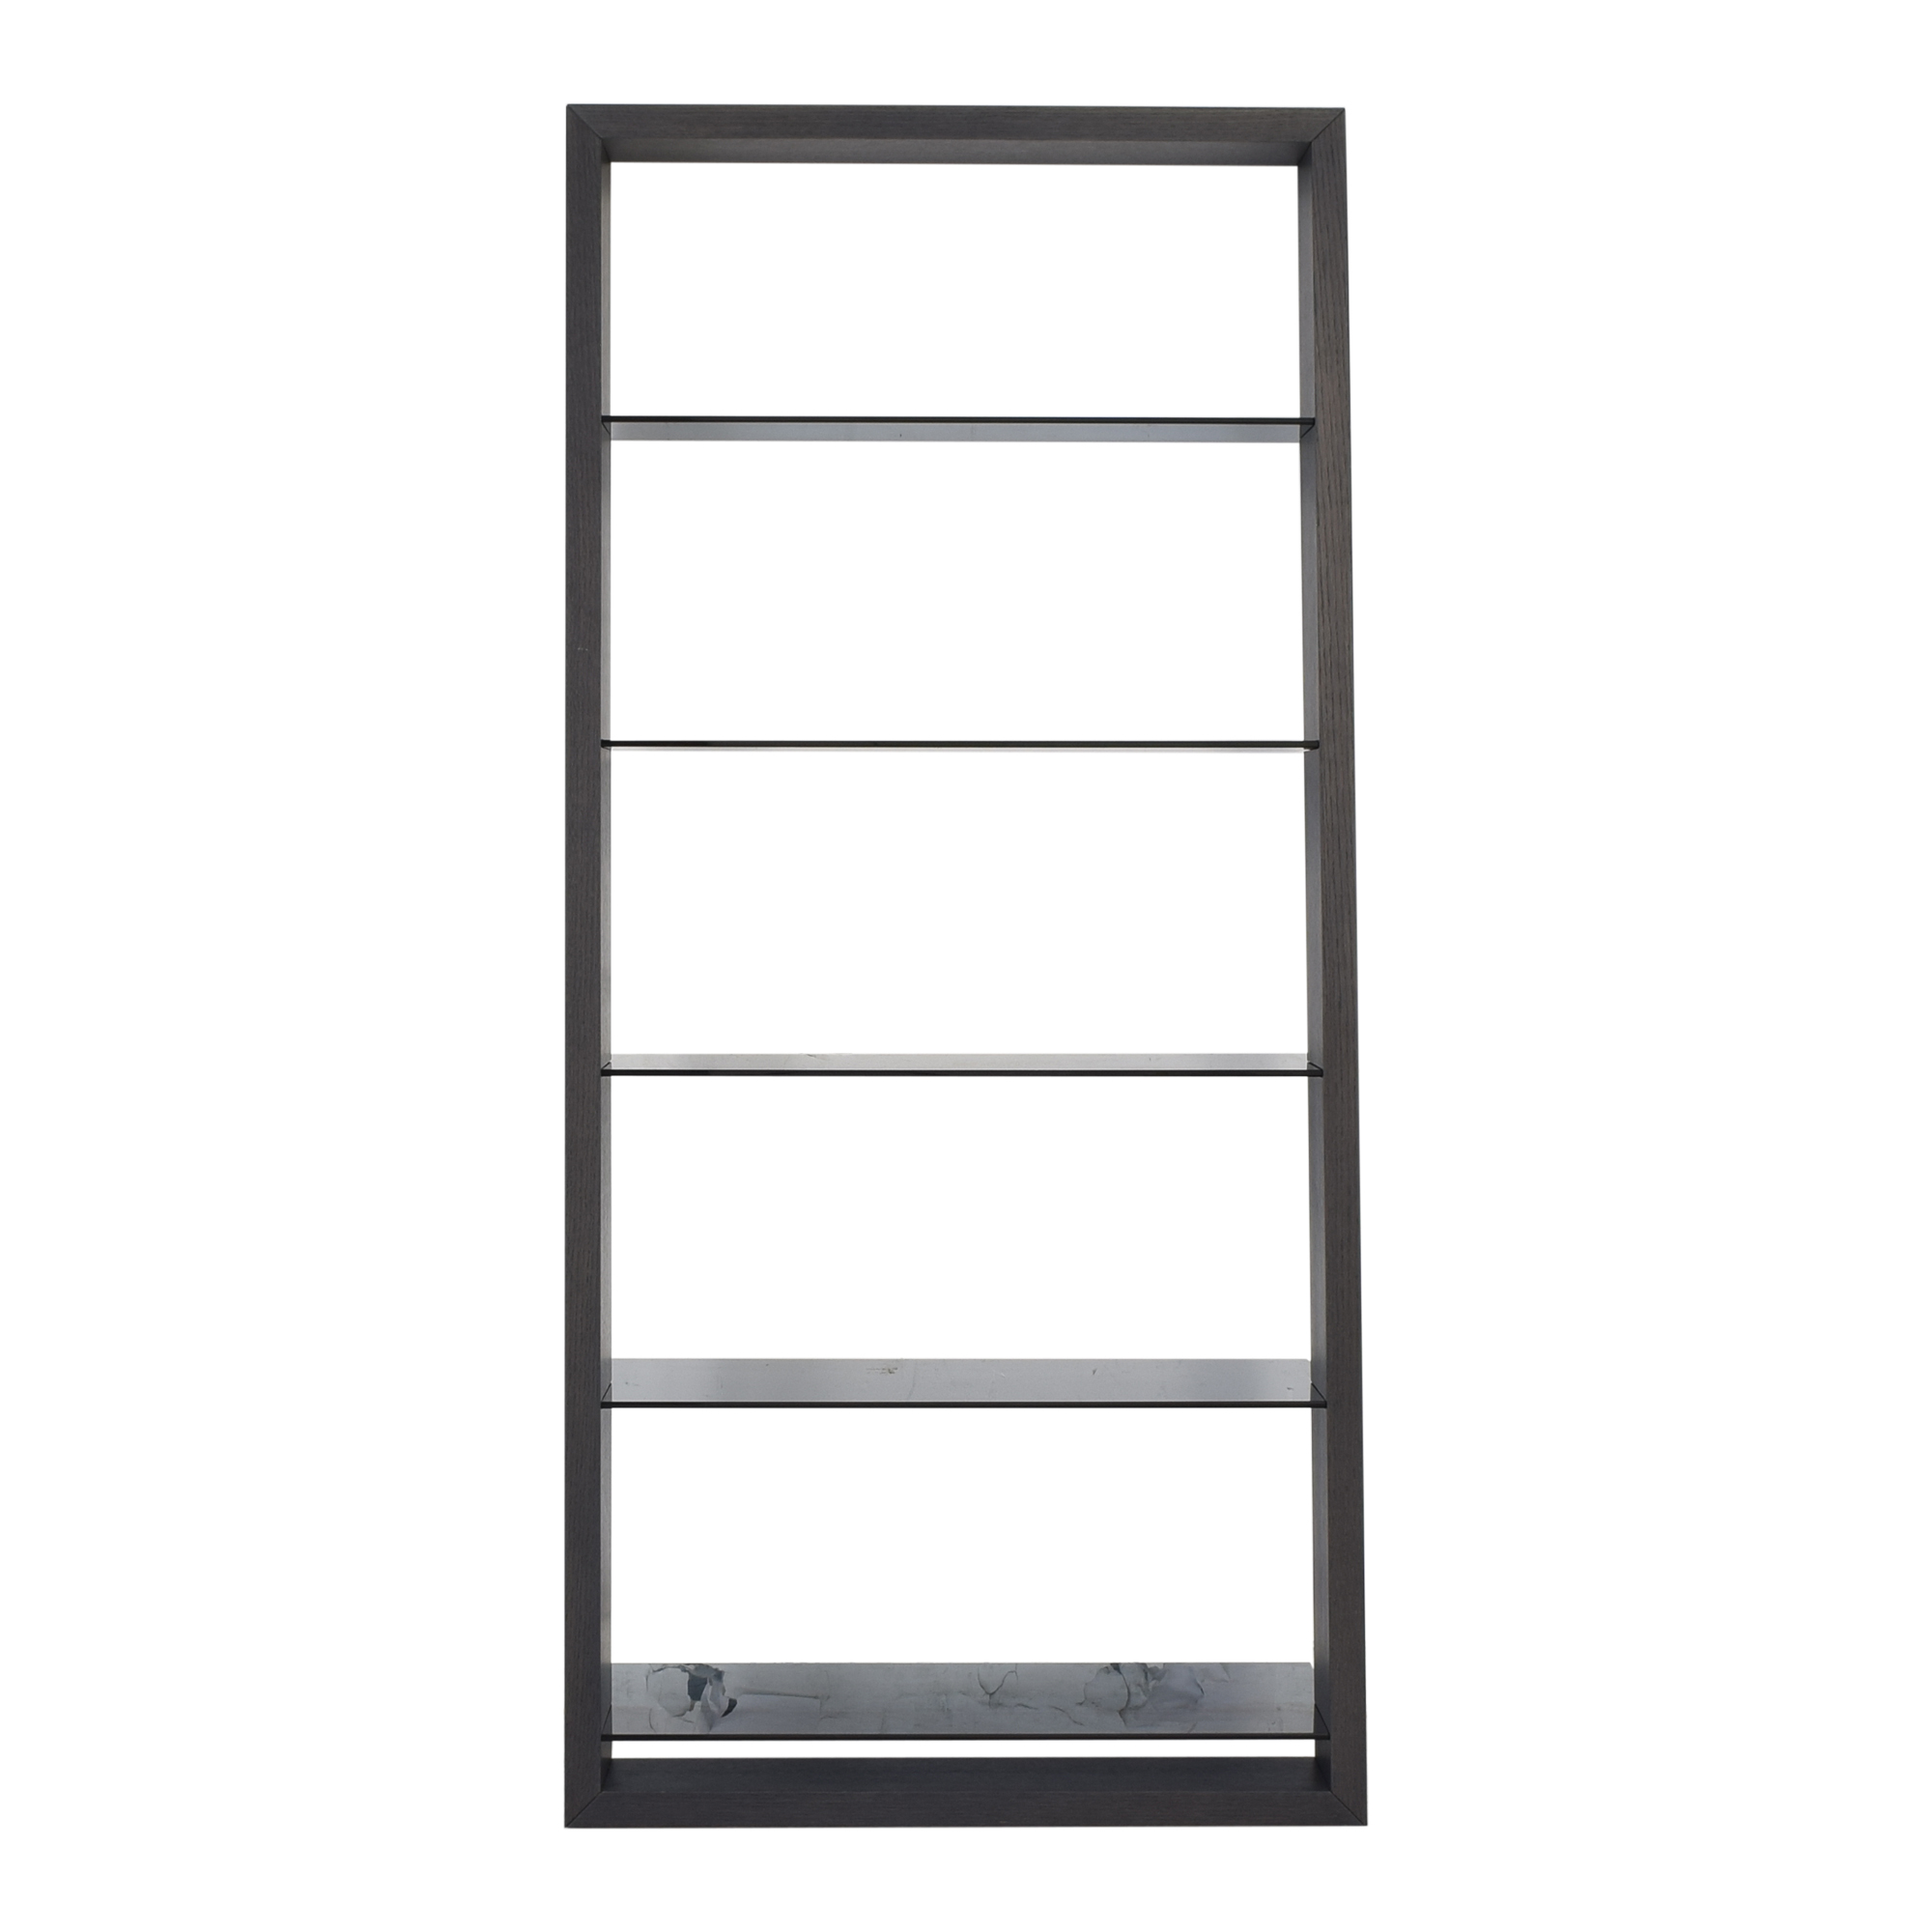 buy Jensen-Lewis BDI Eileen Leaning Shelf BDI Furniture Bookcases & Shelving